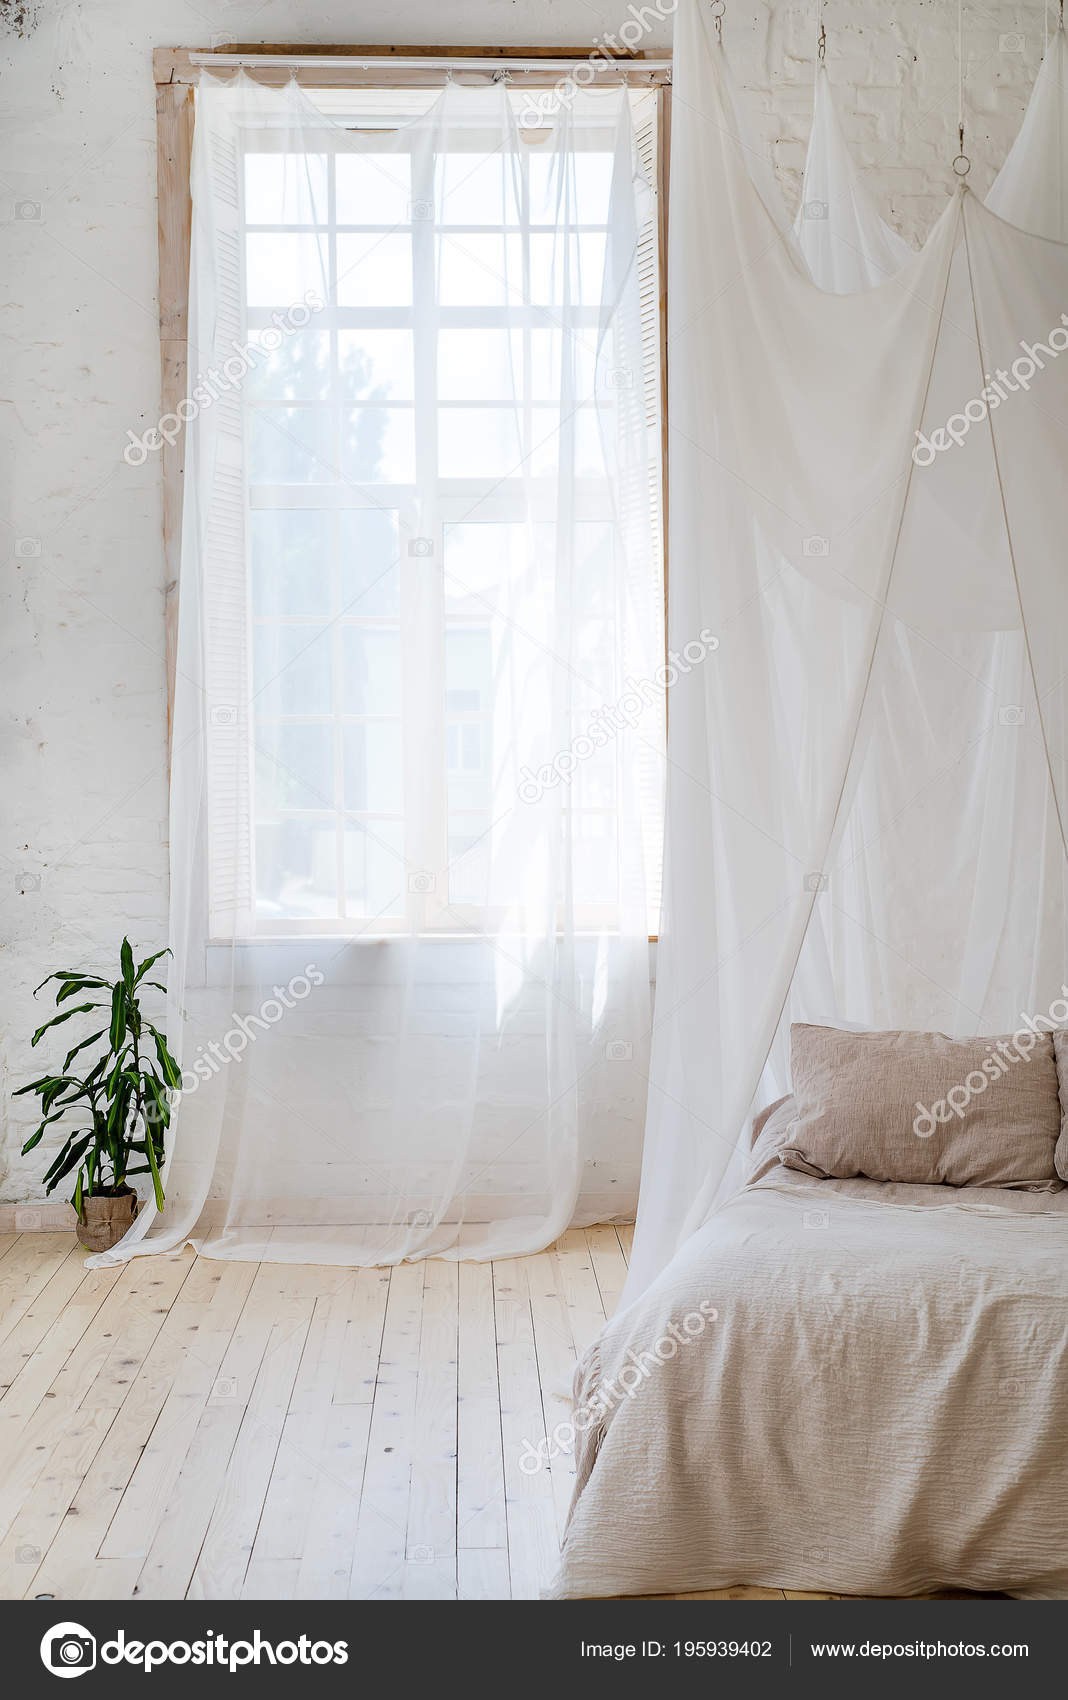 Bedroom Soft Light Colors Wooden Floor Big Comfortable Four Poster Stock Photo C Lyulka 86 195939402